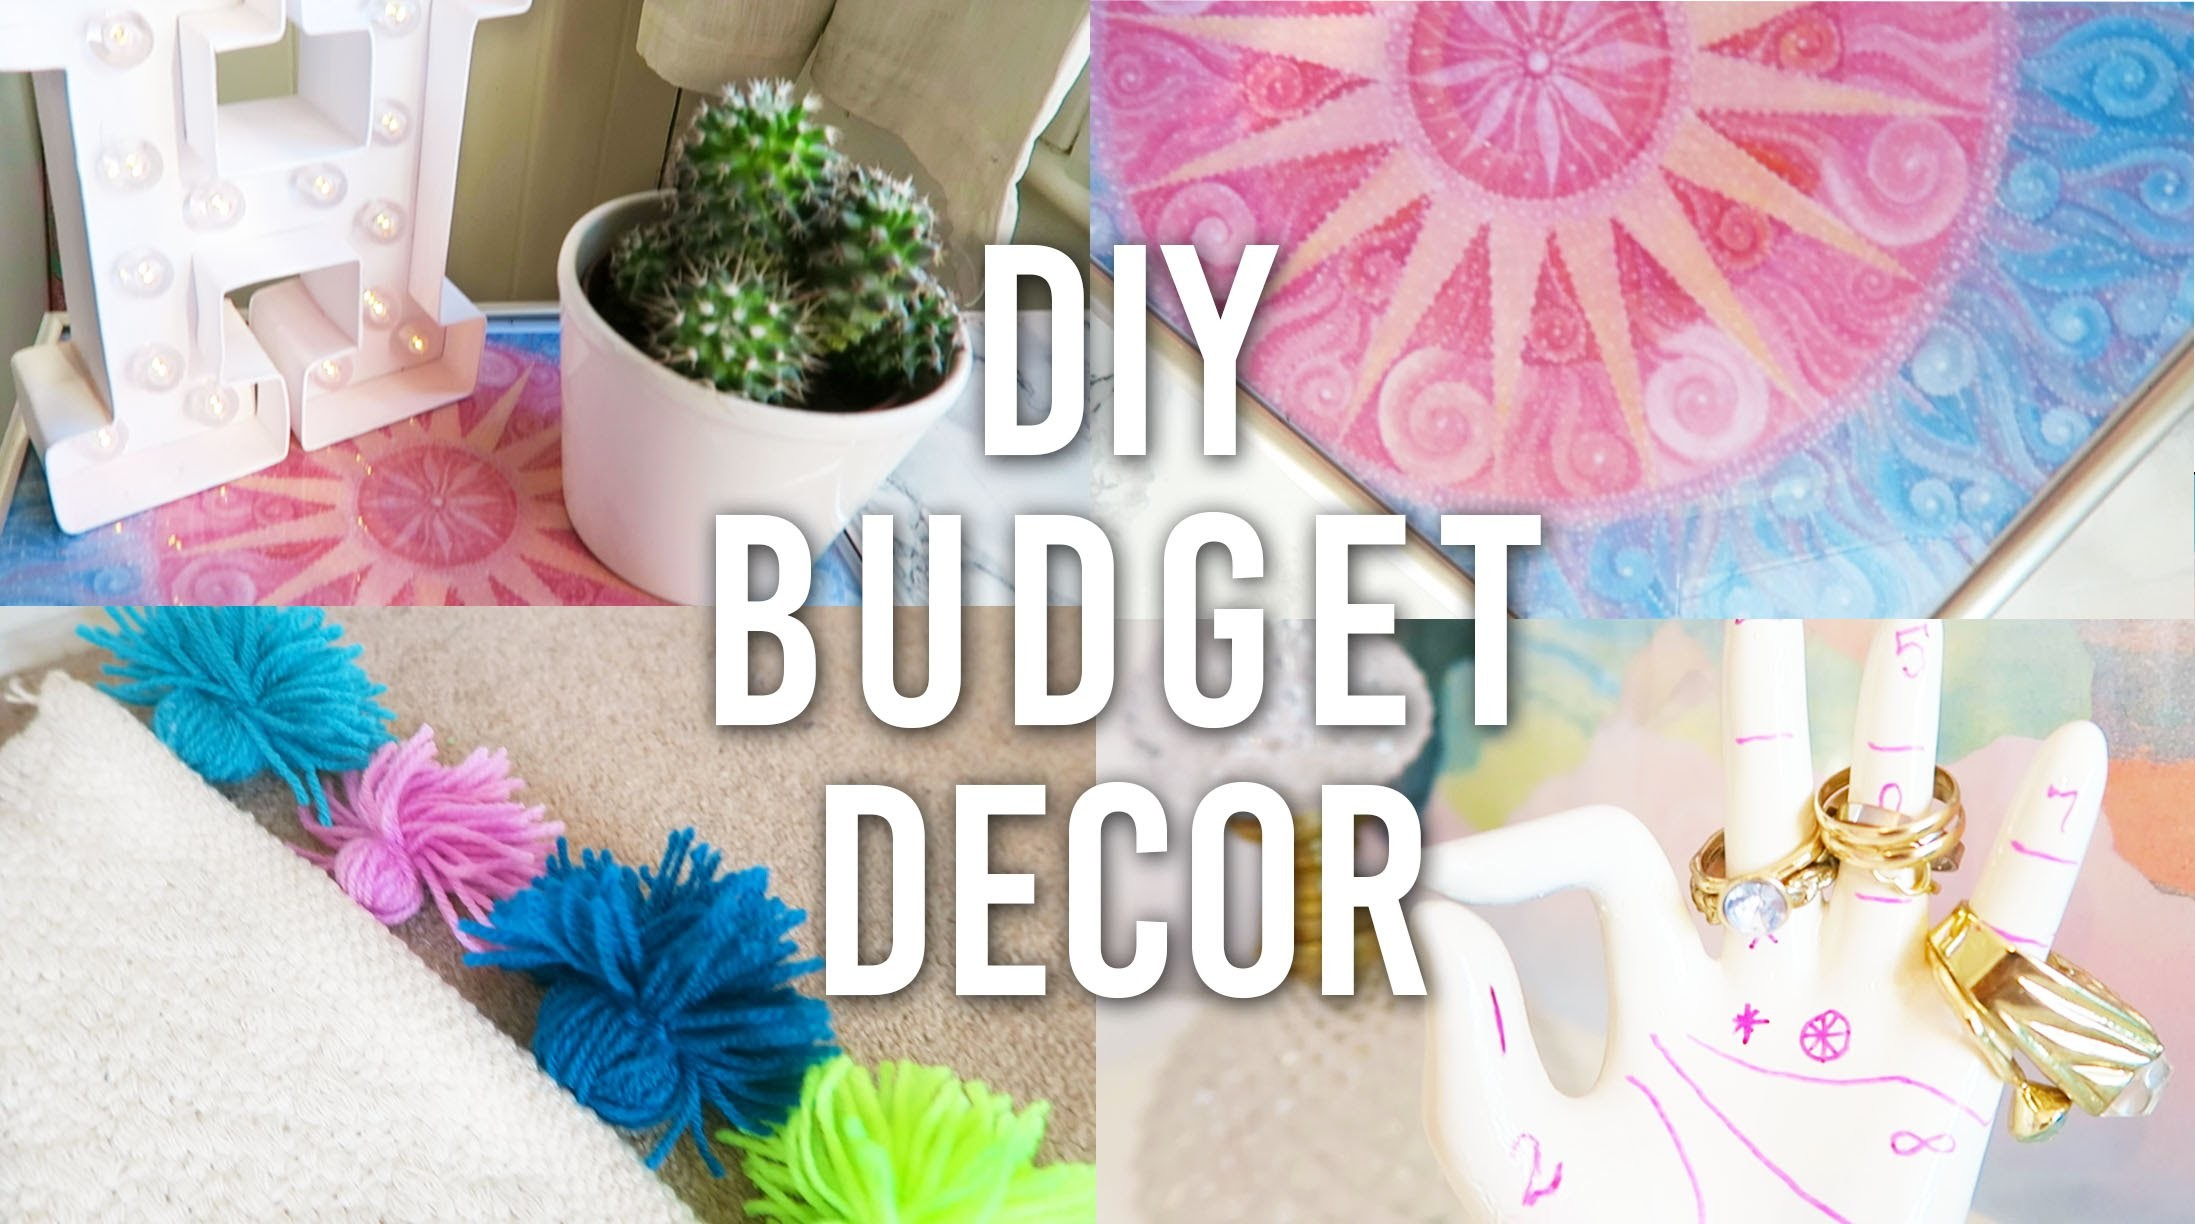 DIY Budget Room Decor for £1 | Pinterest and Tumblr Inspired